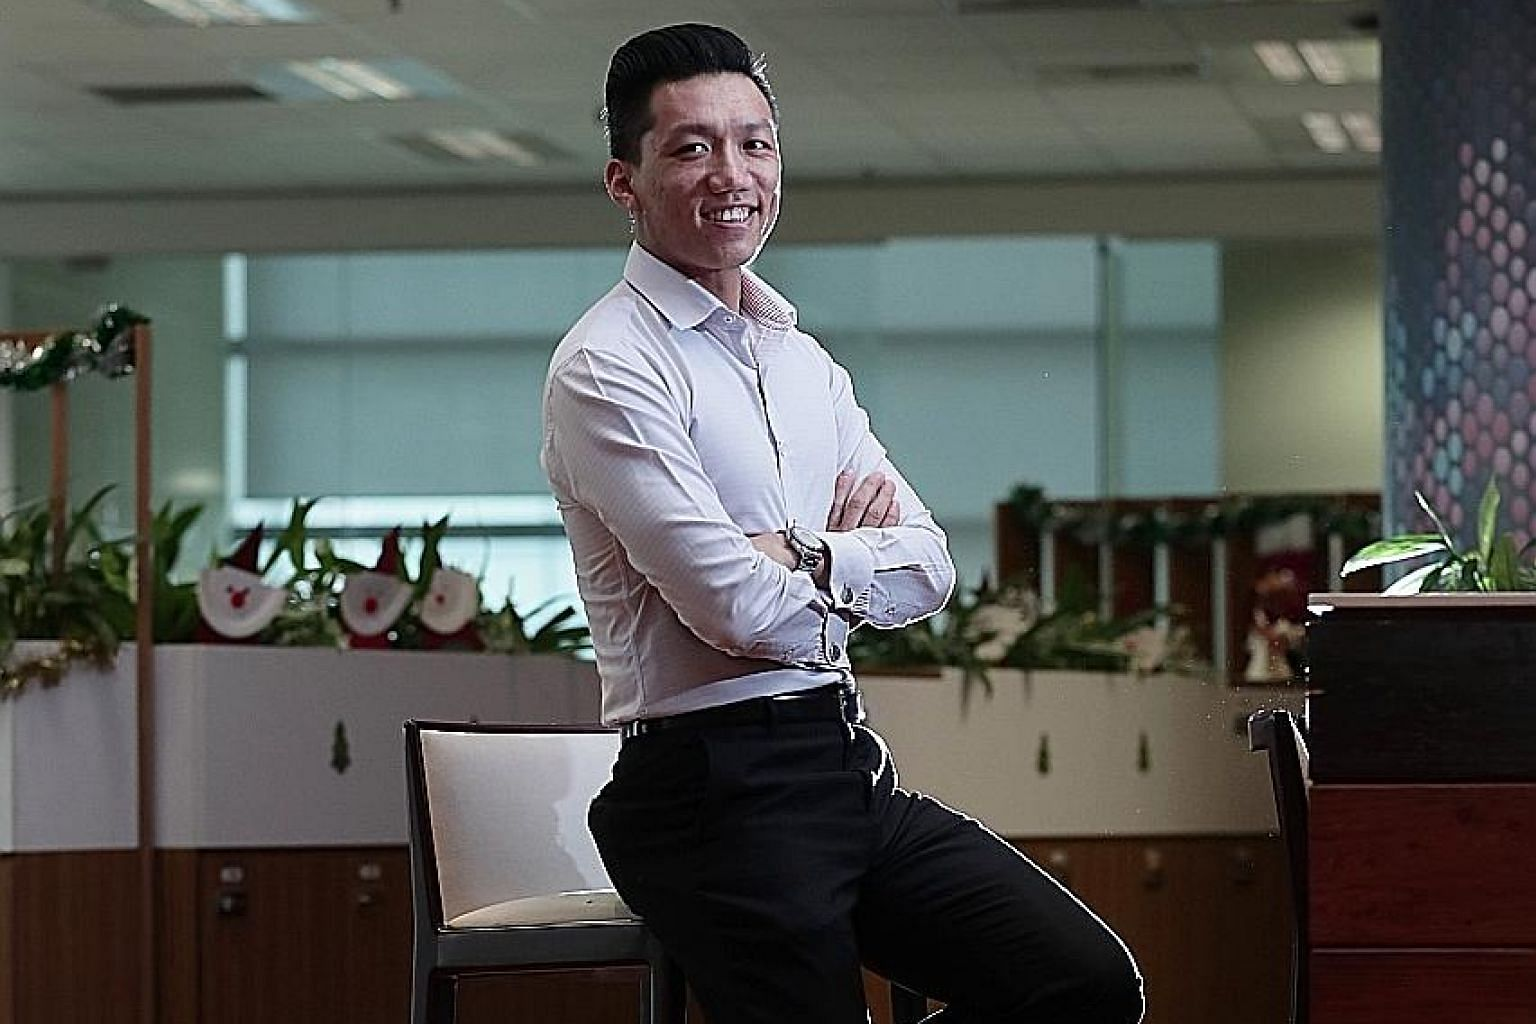 Mr Lam Chun Wai gave up his role as an assistant category development manager in a fast-moving consumer goods company to sign up for a three-month data science boot camp. Shortly after finishing his course in September, the maths and economics gradua